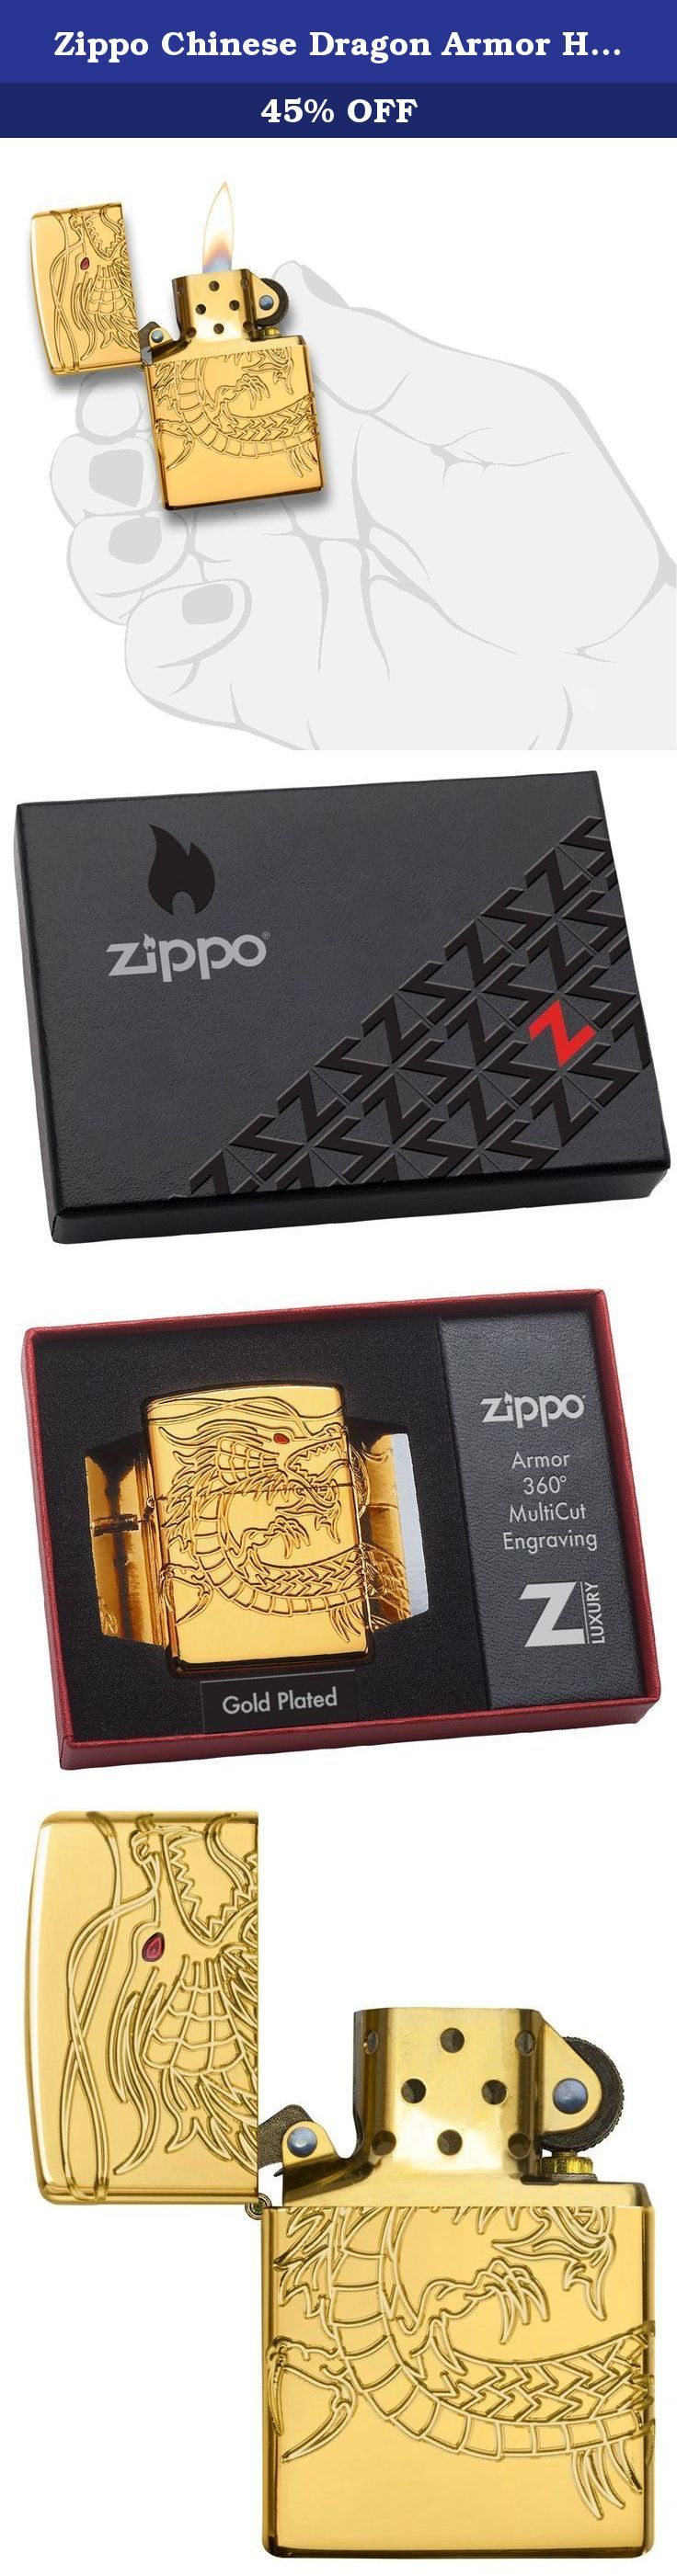 Zippo Chinese Dragon Armor High Polish Gold Plate Pocket Lighter. Seamless, wrapped 360-degree Multicut carving across the front,sides, and back of an Armor gold plated lighter brings this Asian dragon to life. Translucent red epoxy inlay and gold plated inside unit add to the mystique. Special pacakaging will draw interest to this 360-degree MultiCut Armor design. For optimal performance, fill with Zippo premium lighter fluid.